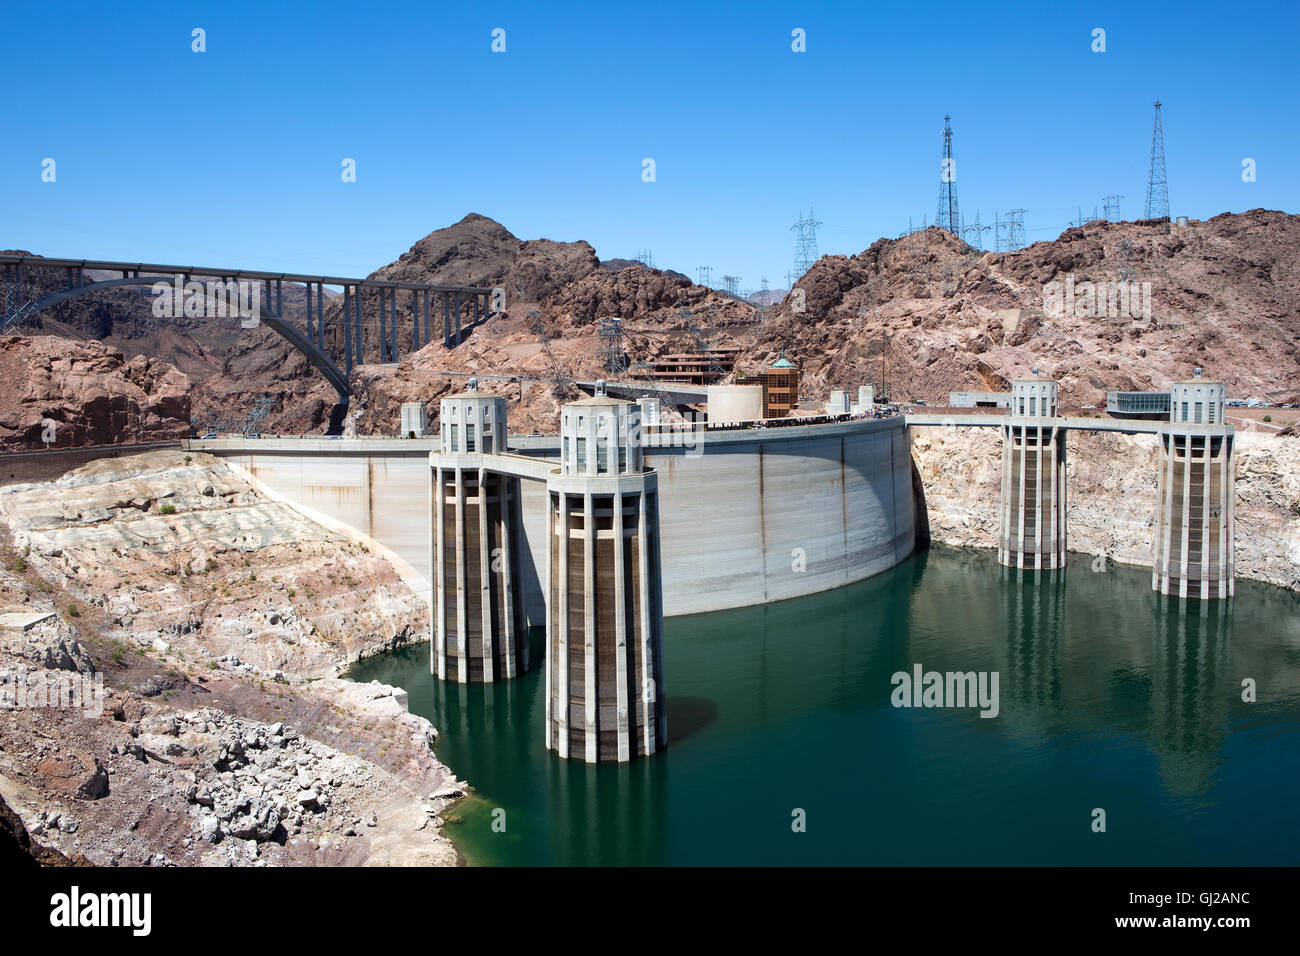 Hoover Dam located on the borders of Nevada and Arizona as it generates electricity from the flow of the Colorado - Stock Image